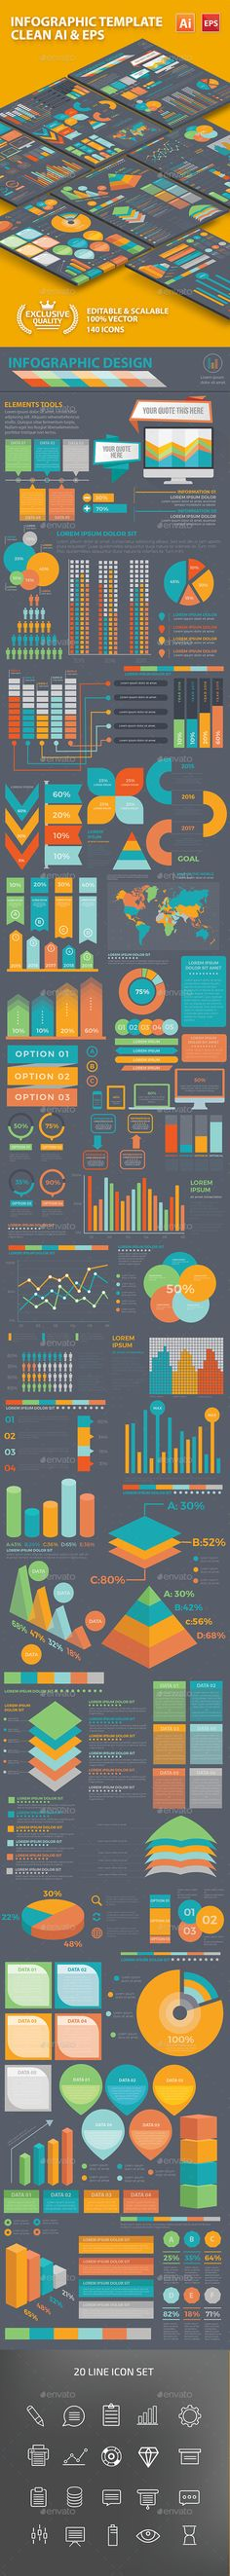 Infographic Template Design - Infographics Download here : https://graphicriver.net/item/infographic-template-design/18248948?s_rank=494&ref=Al-fatih